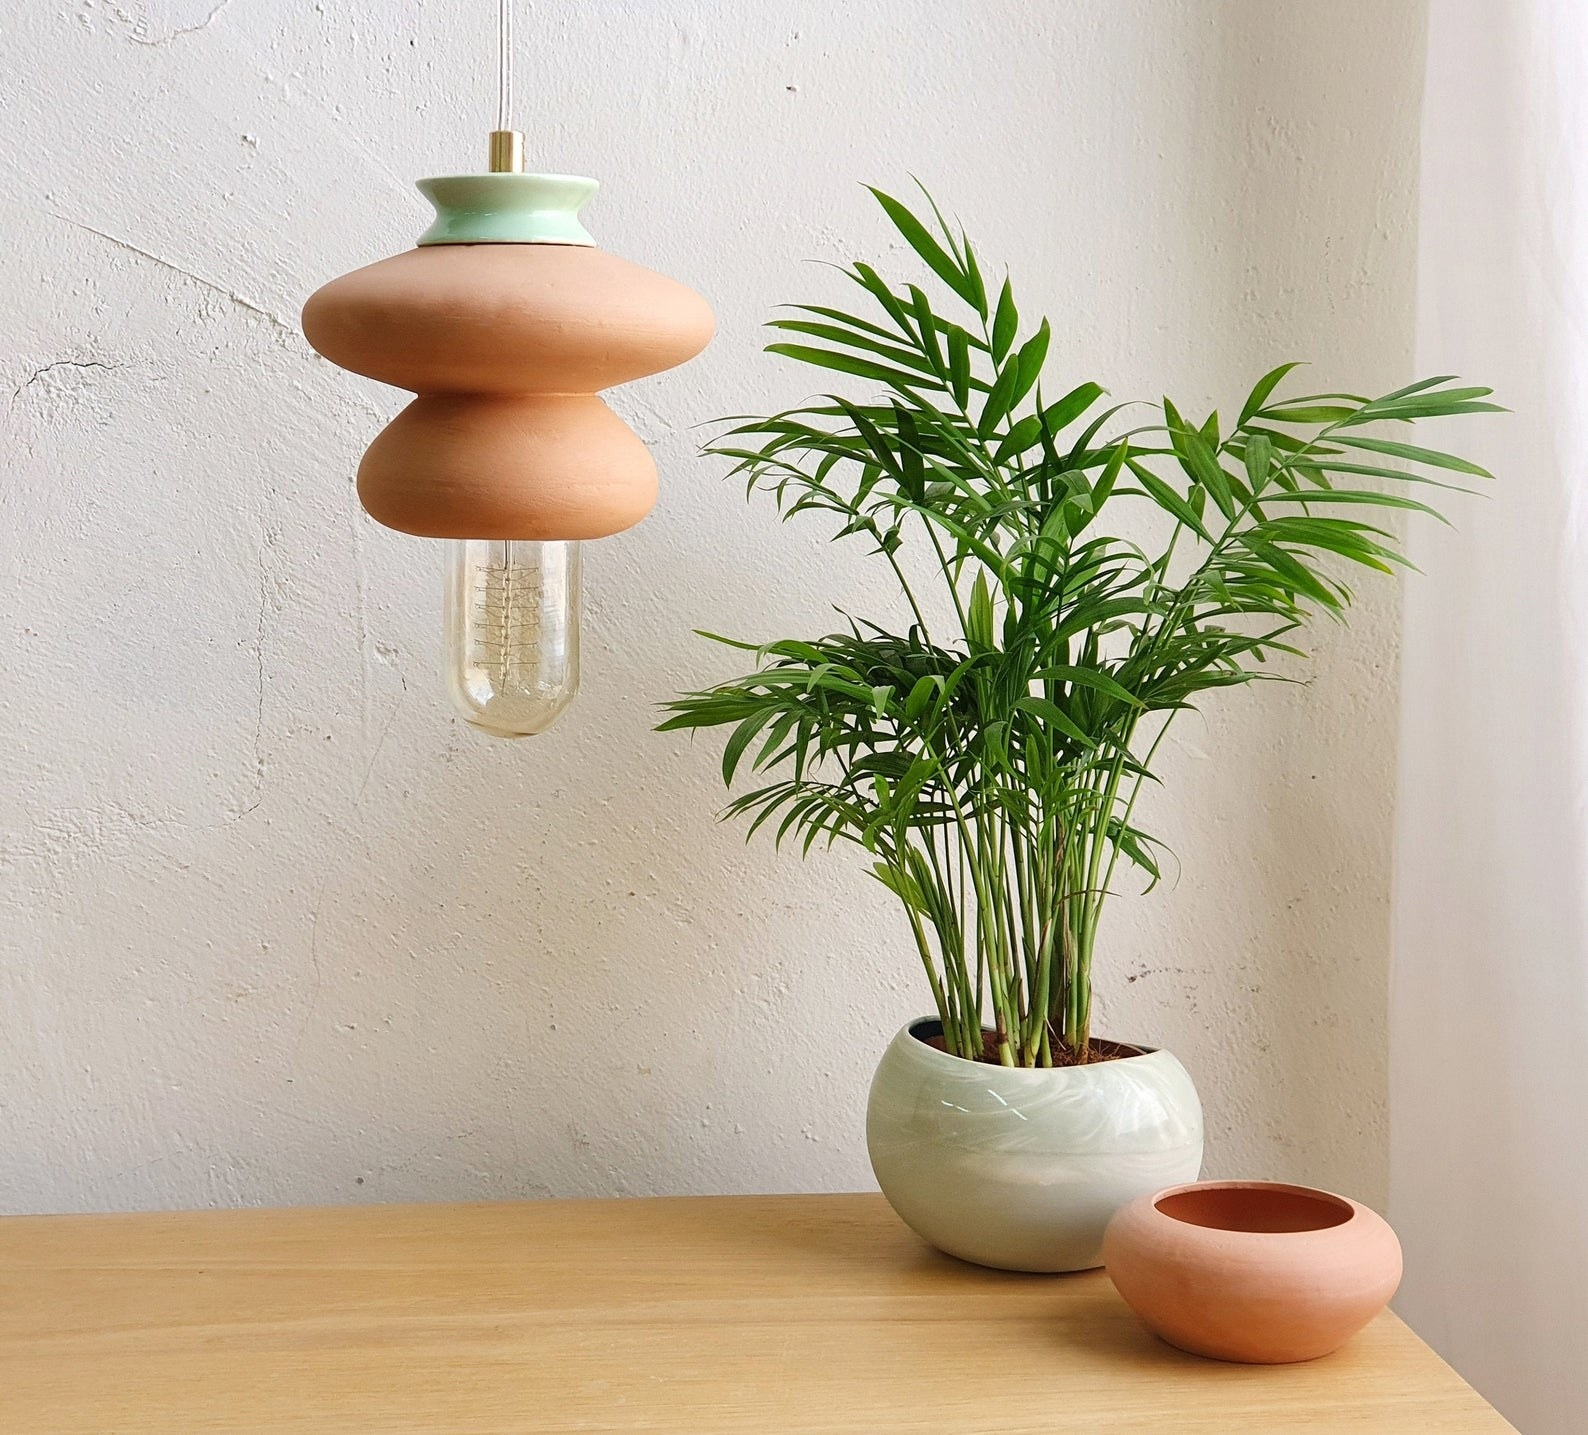 The lamp hanging next to a plant